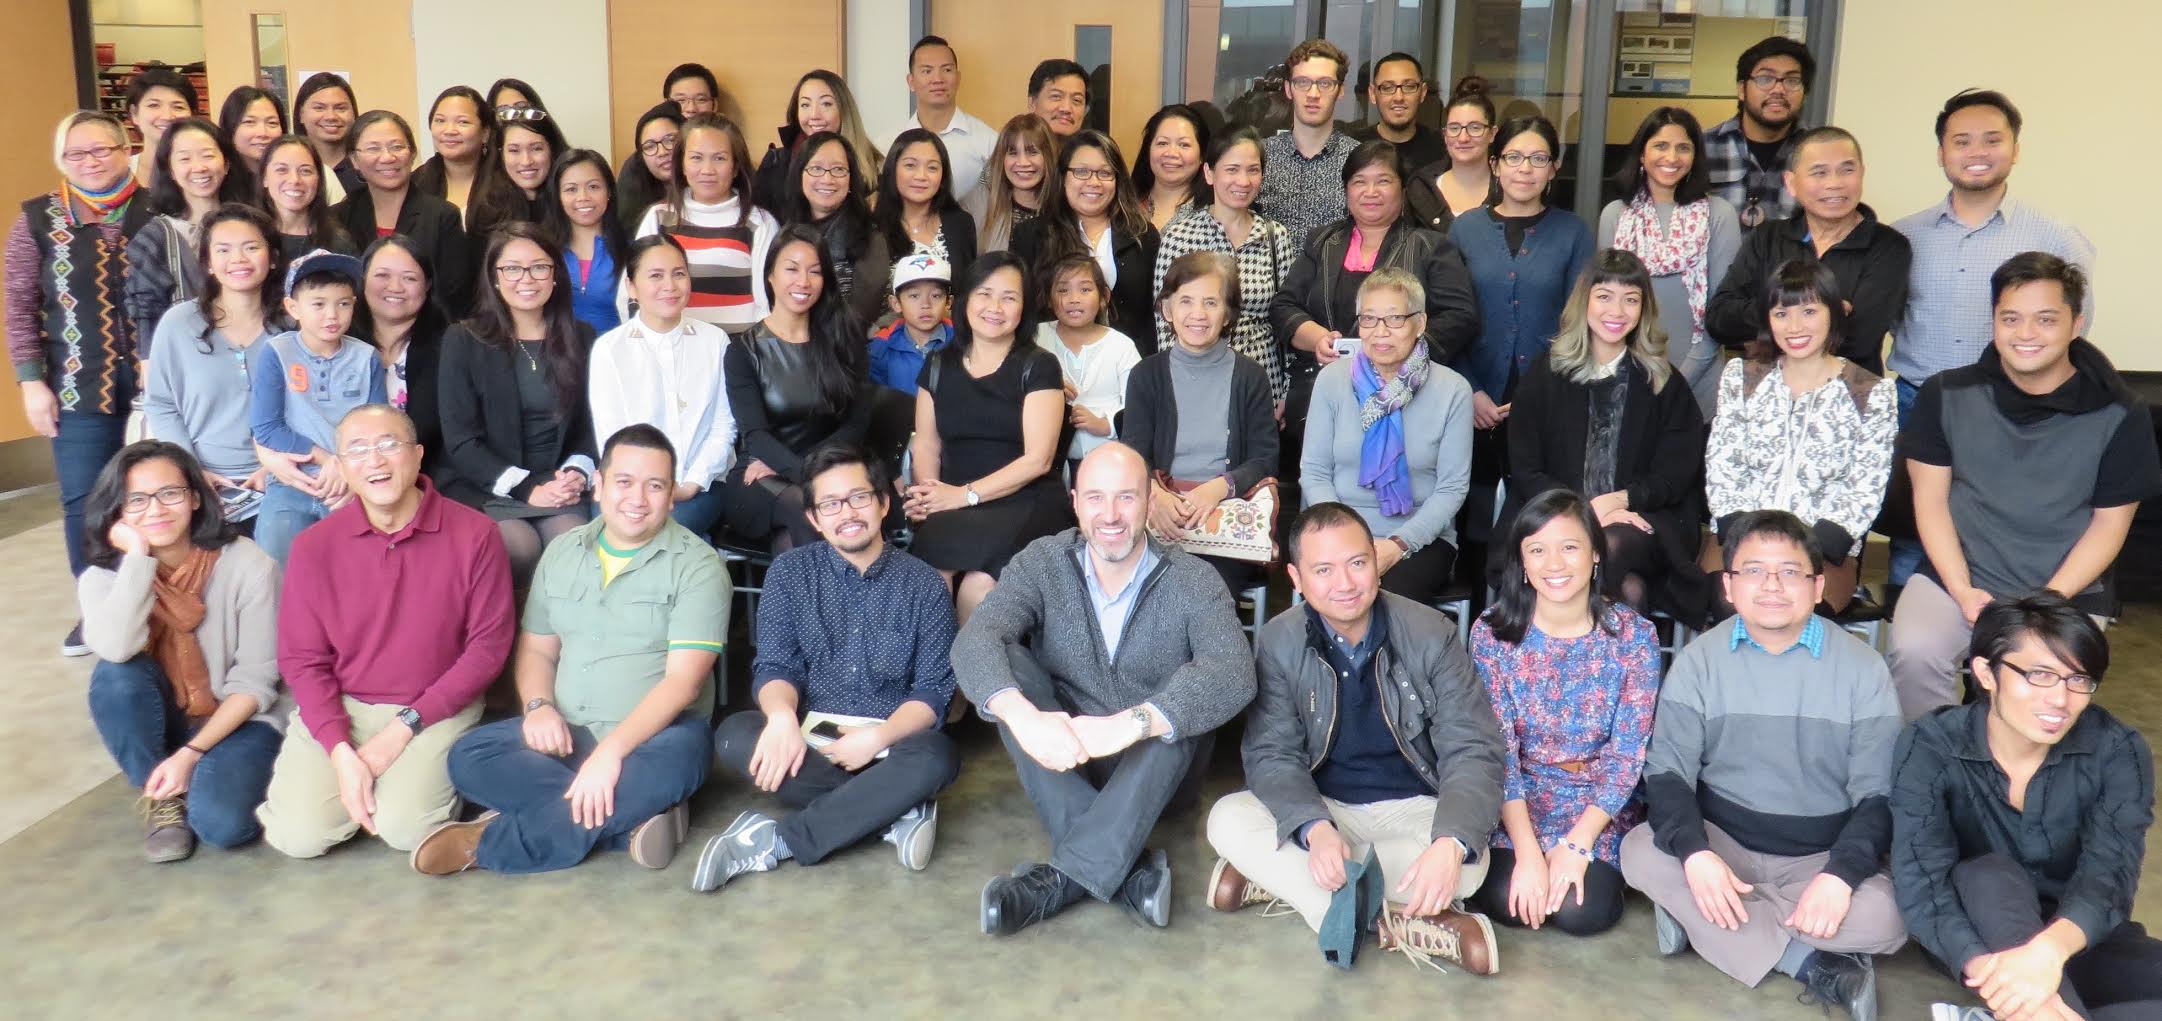 Participants of the Filipino-Canadian Research and Action Summit in Dec 2015